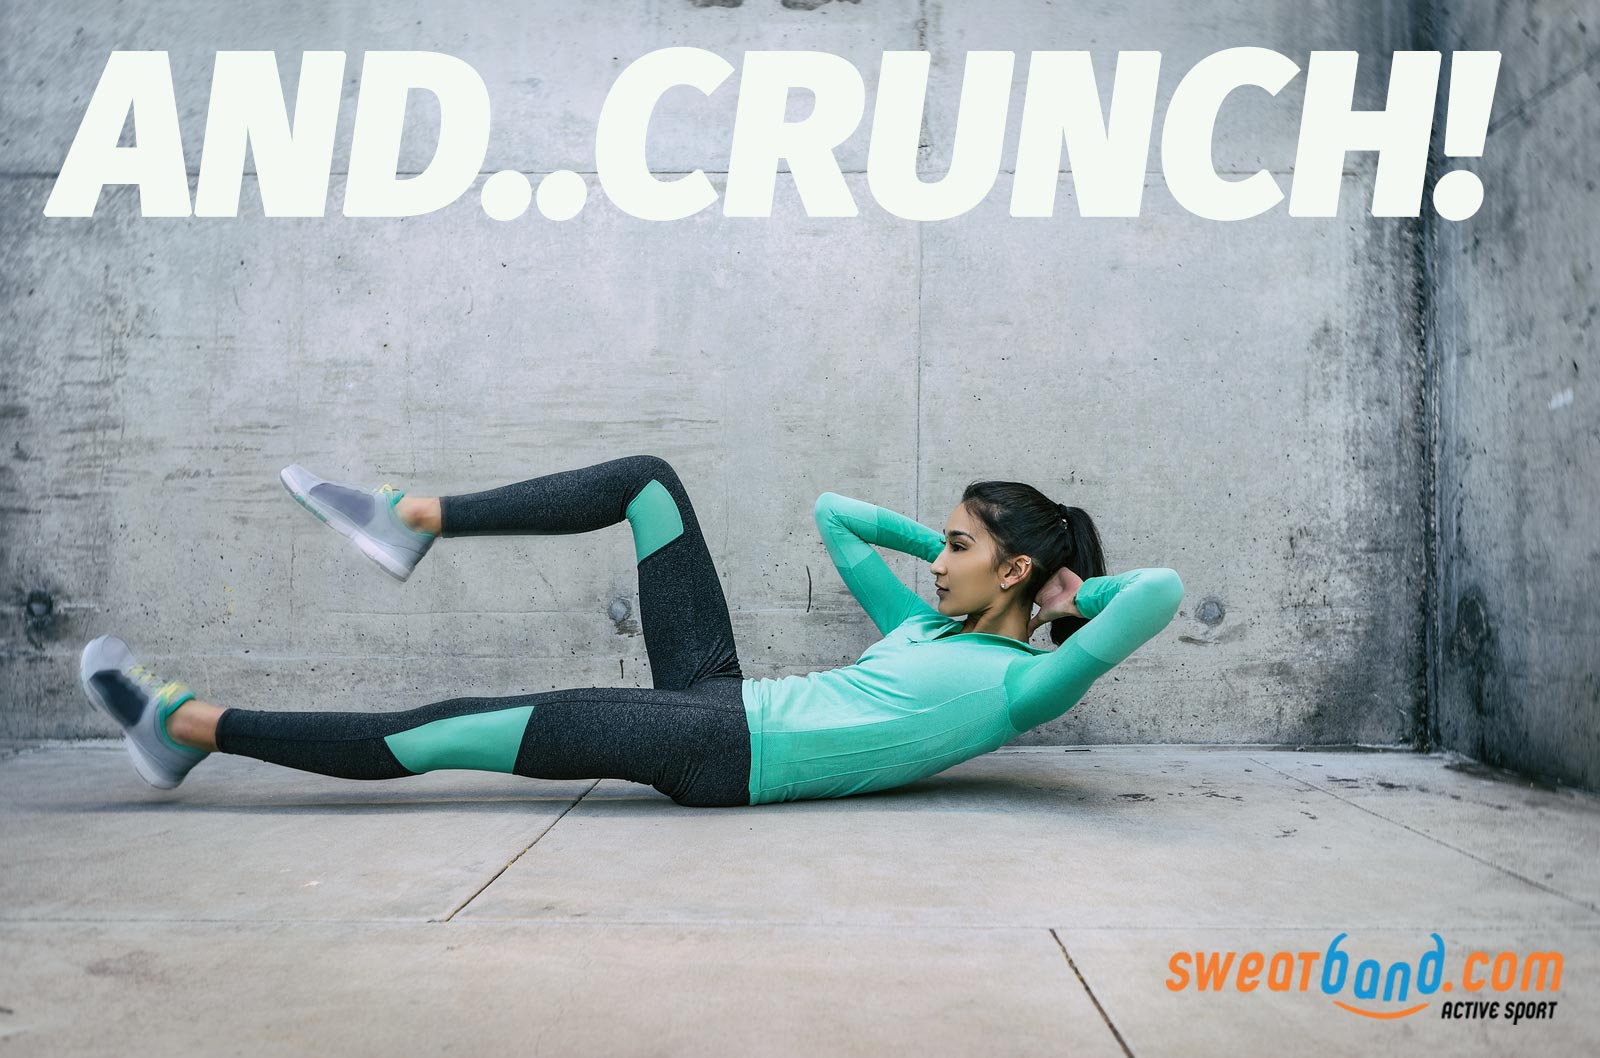 Get your crunch on in our 1 hour circuit training routine!